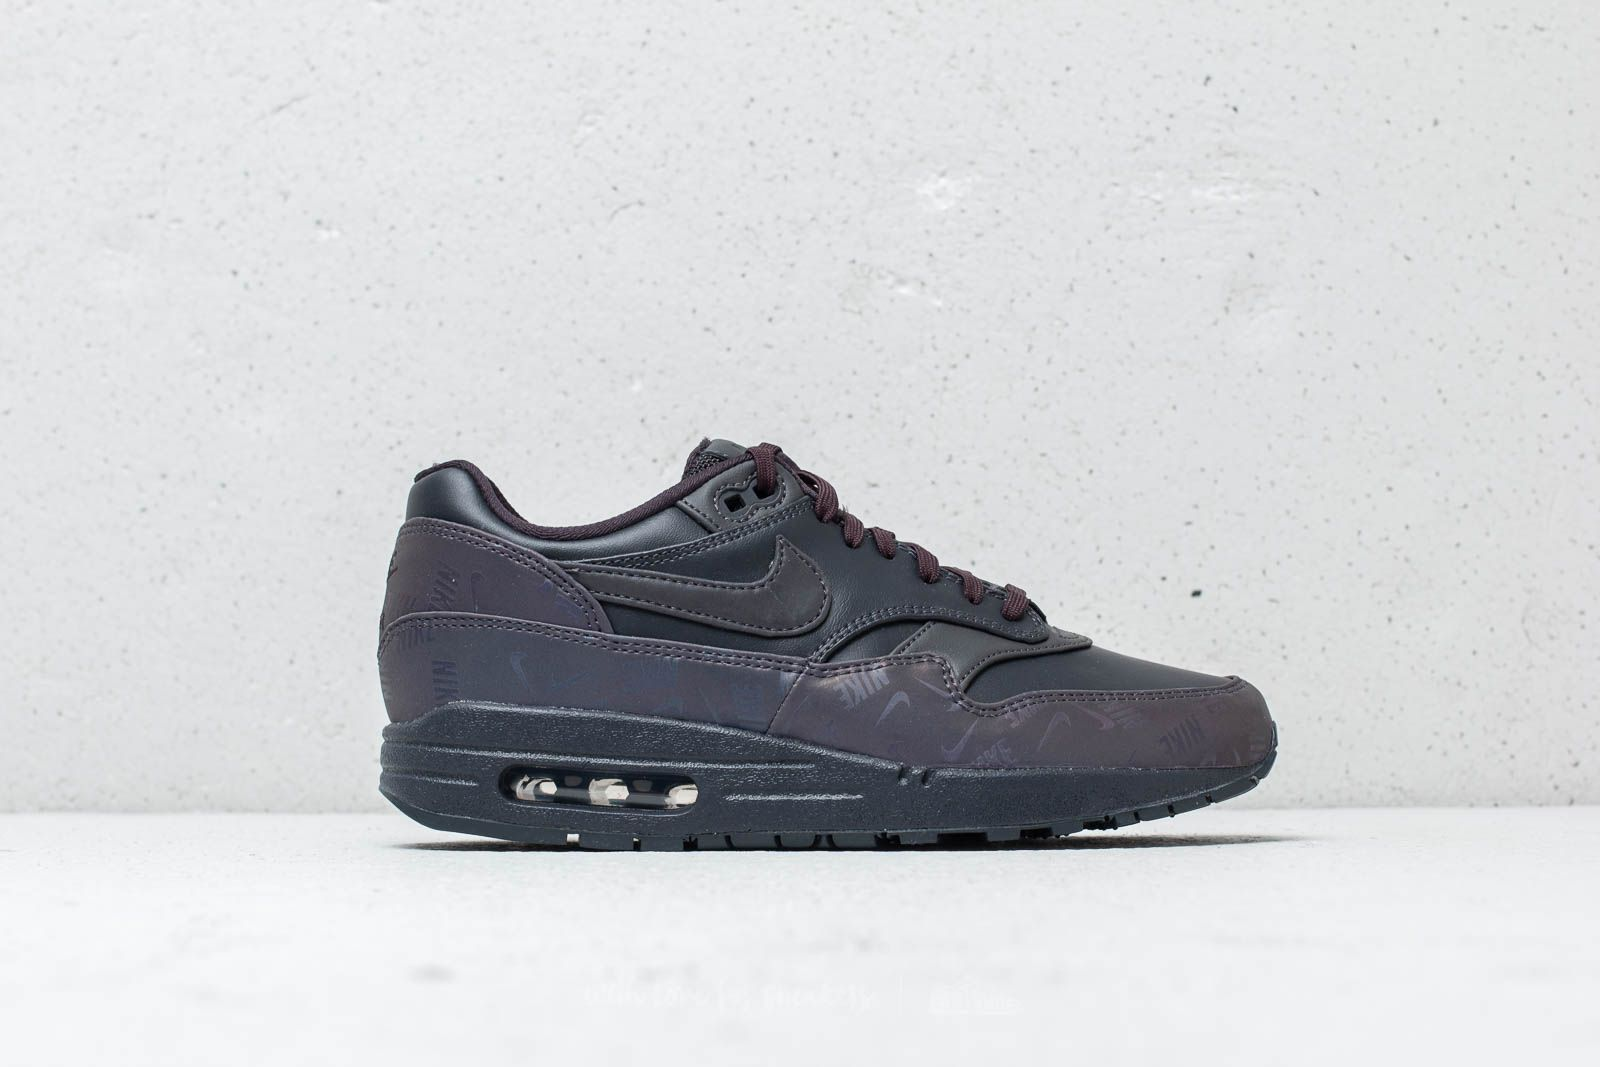 7690dee9adc2 Nike WMNS Air Max 1 LX Oil Grey  Oil Grey-Oil Grey at a